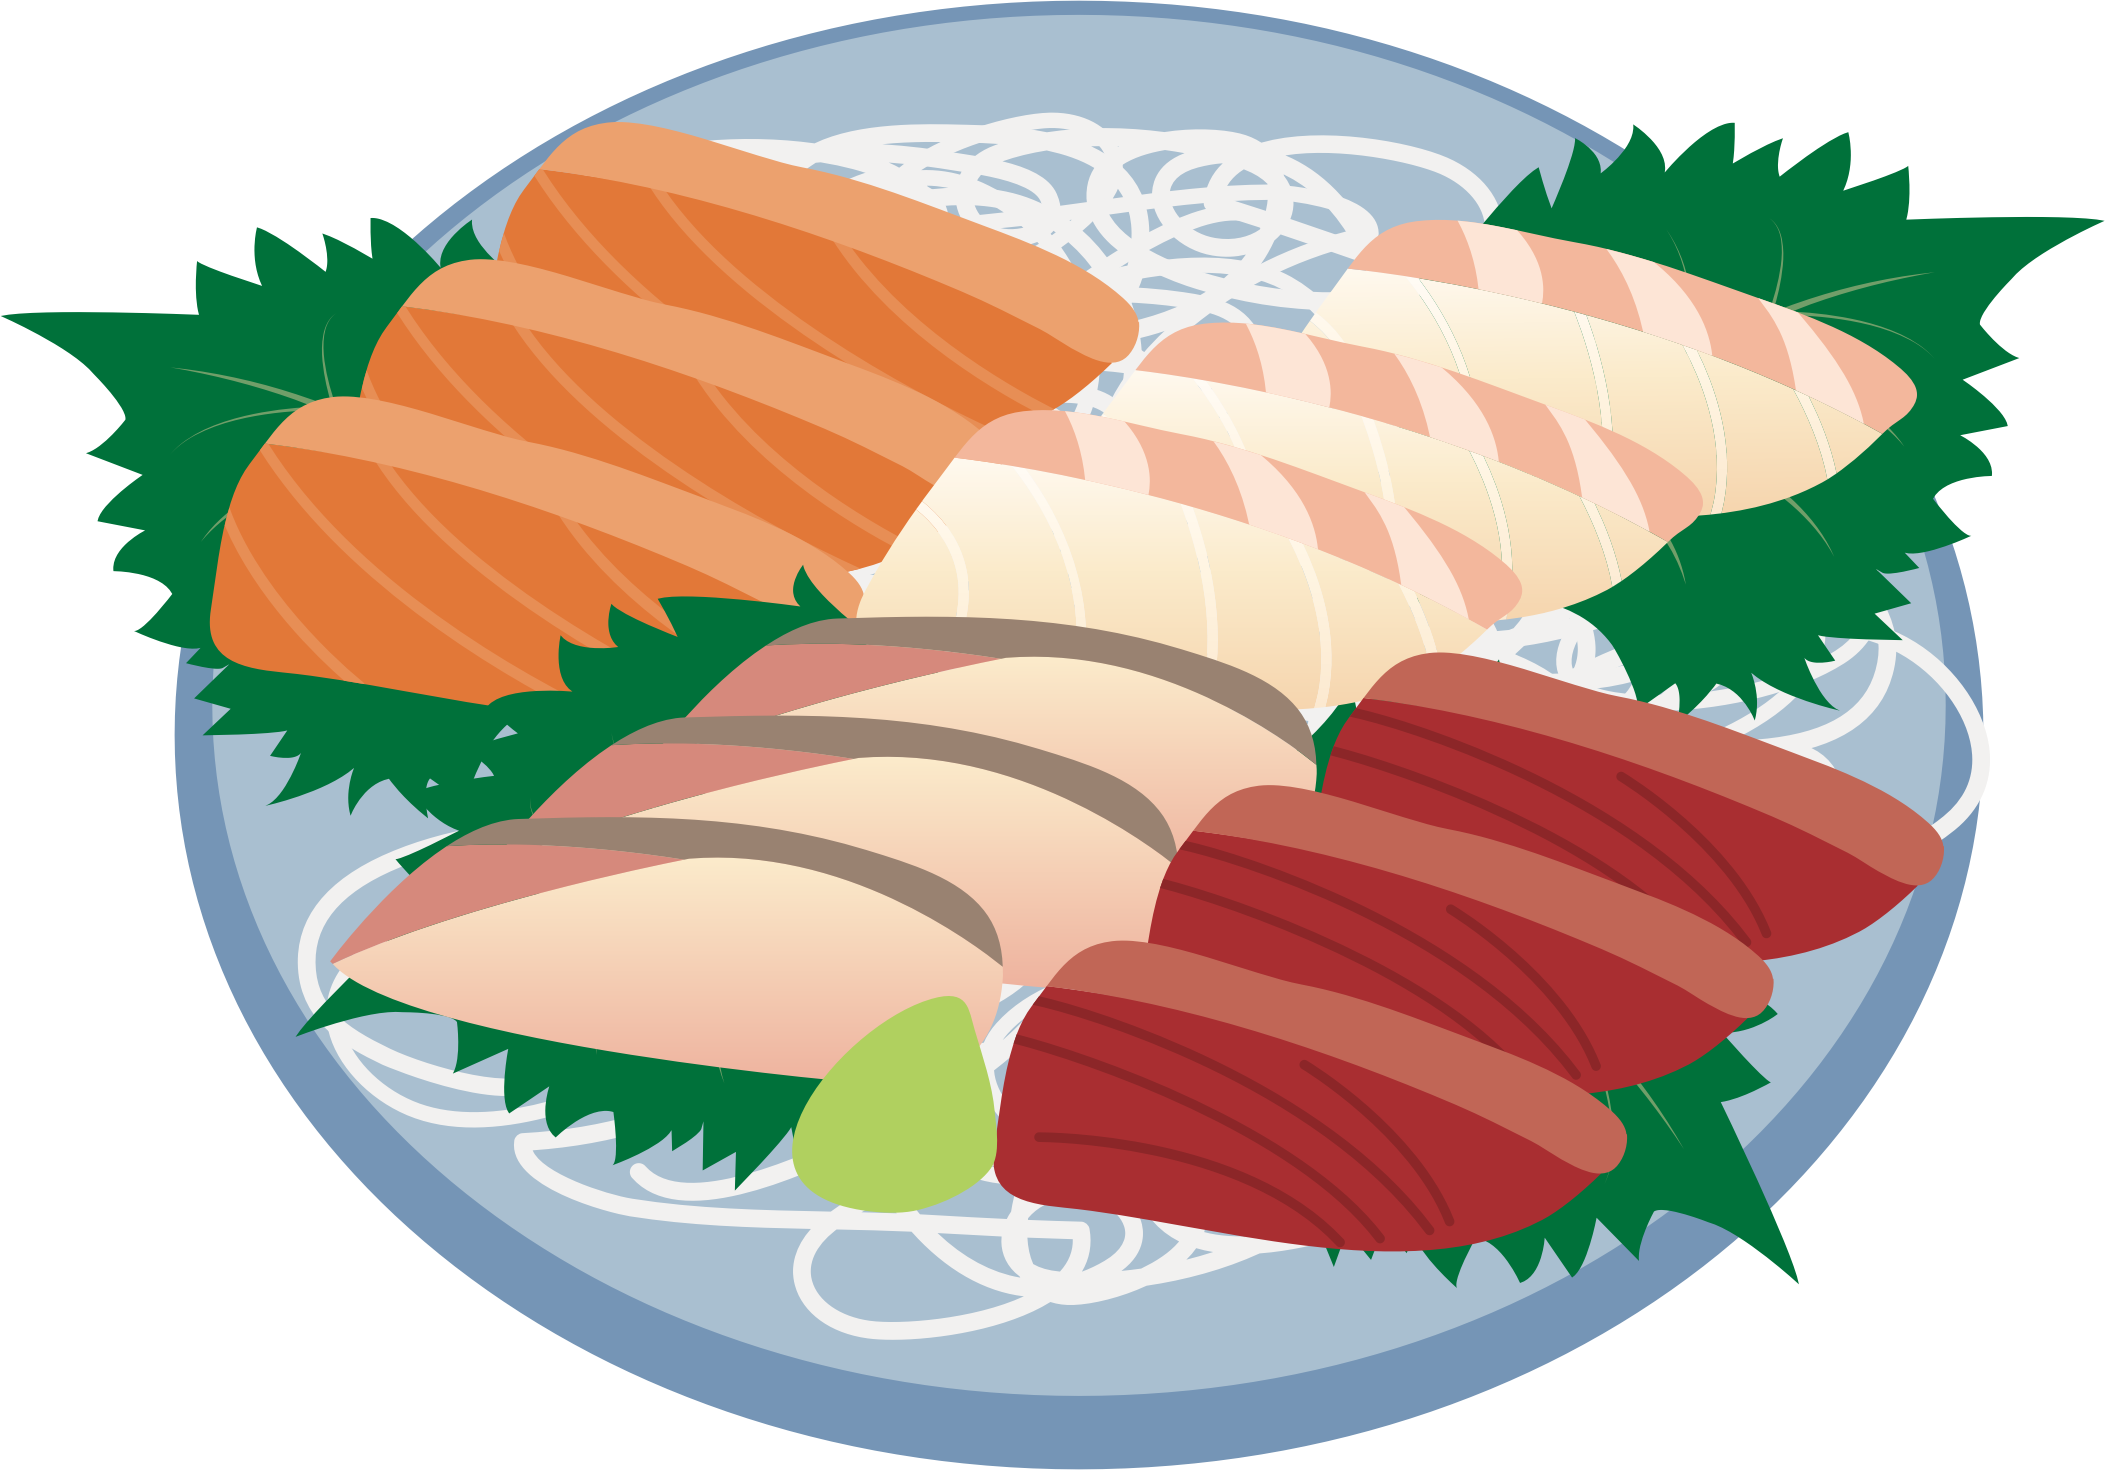 Sashimi Assortment (#2) by oksmith